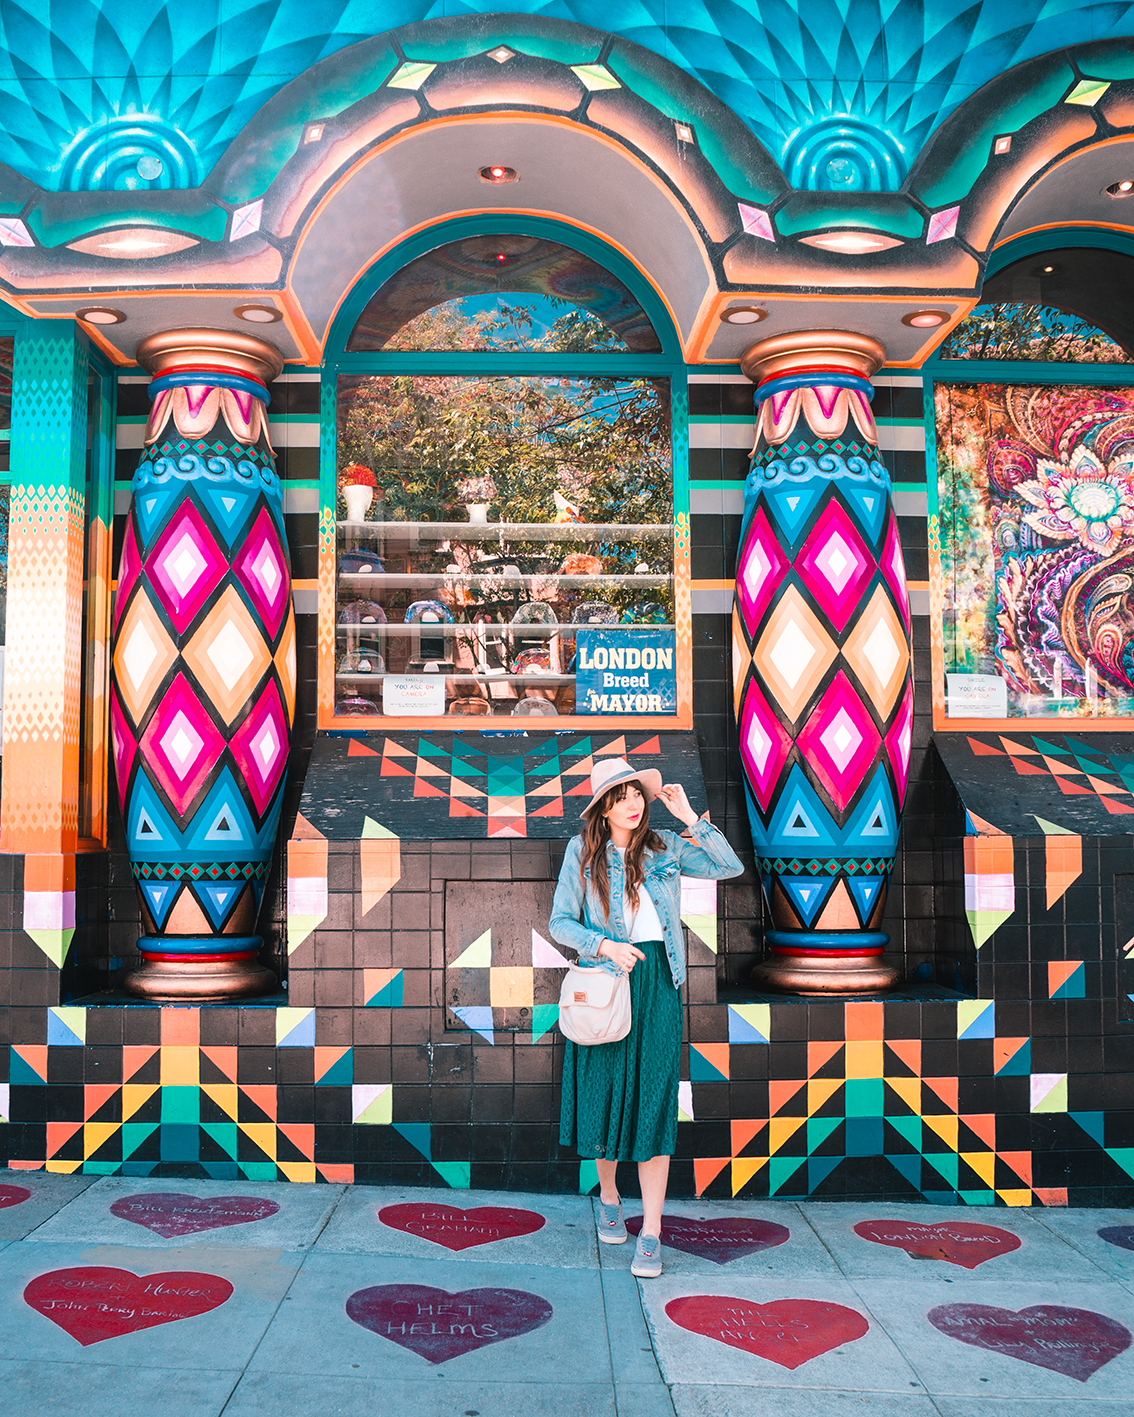 2 10 most instagrammable places in San Francisco you don't have to miss!